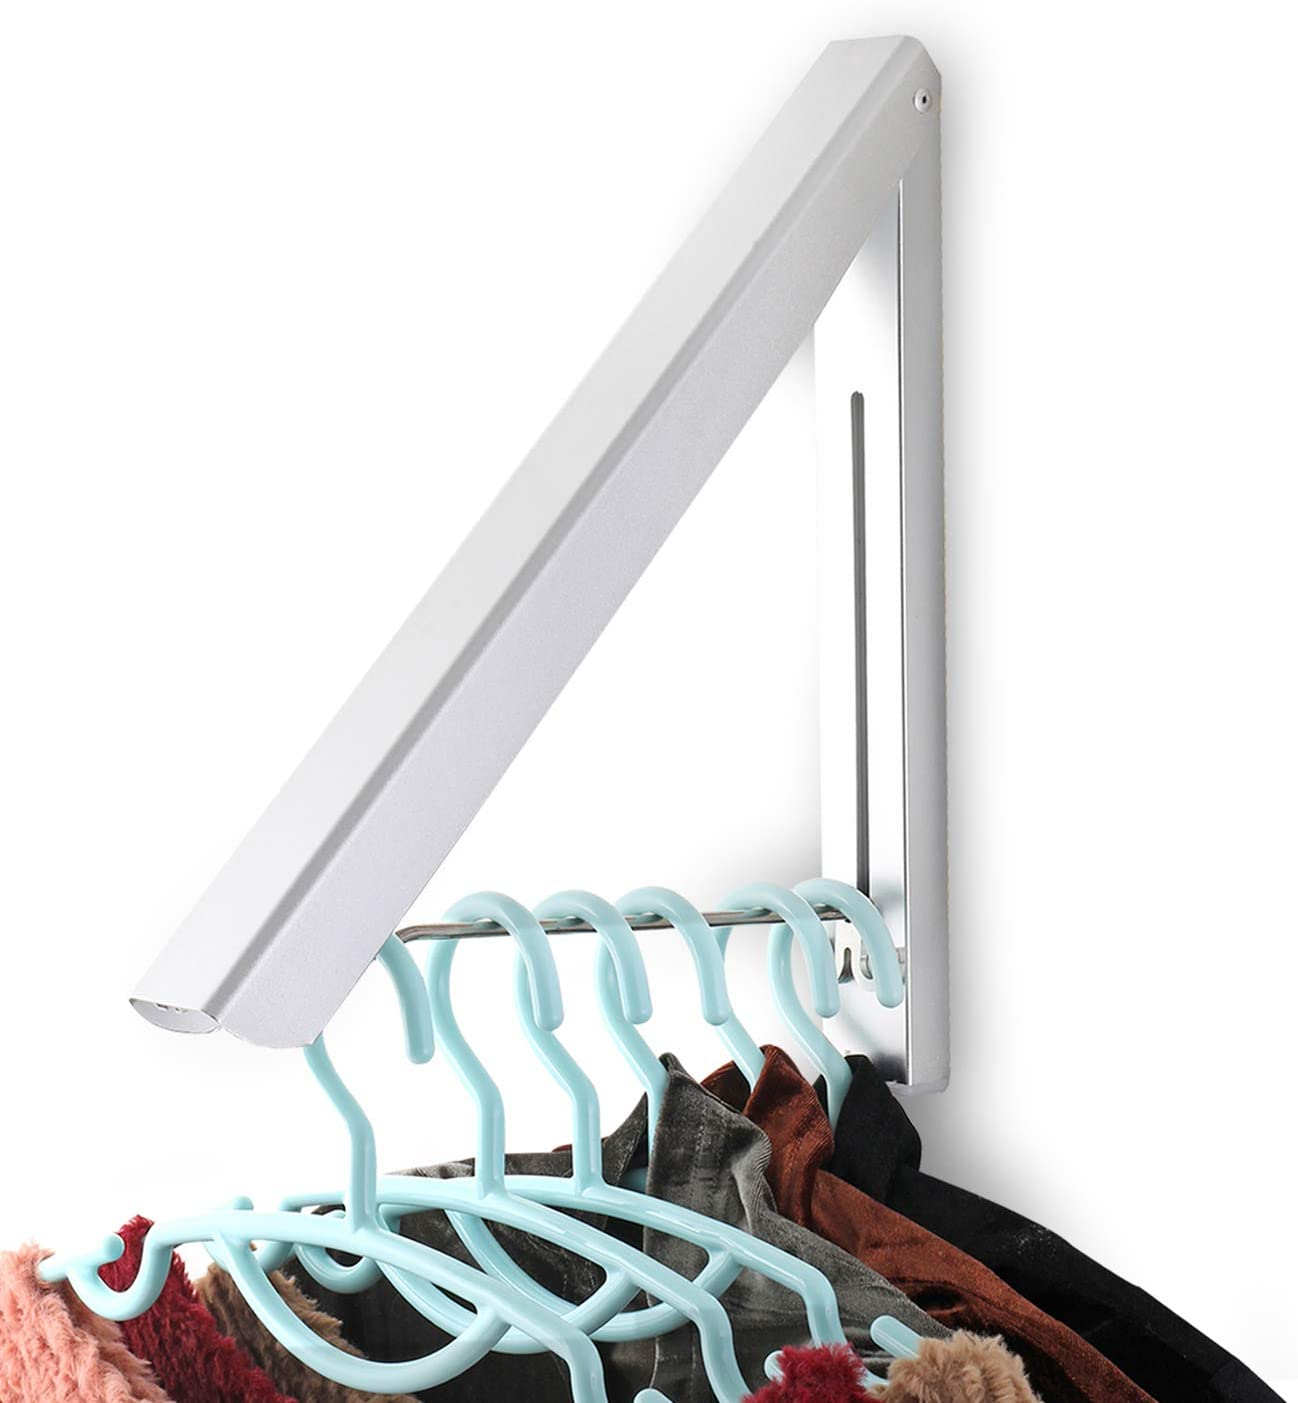 Sweshine Folding Clothes Hanger Wall Max 87% shop OFF Indoor Mounted Outdoor Alum